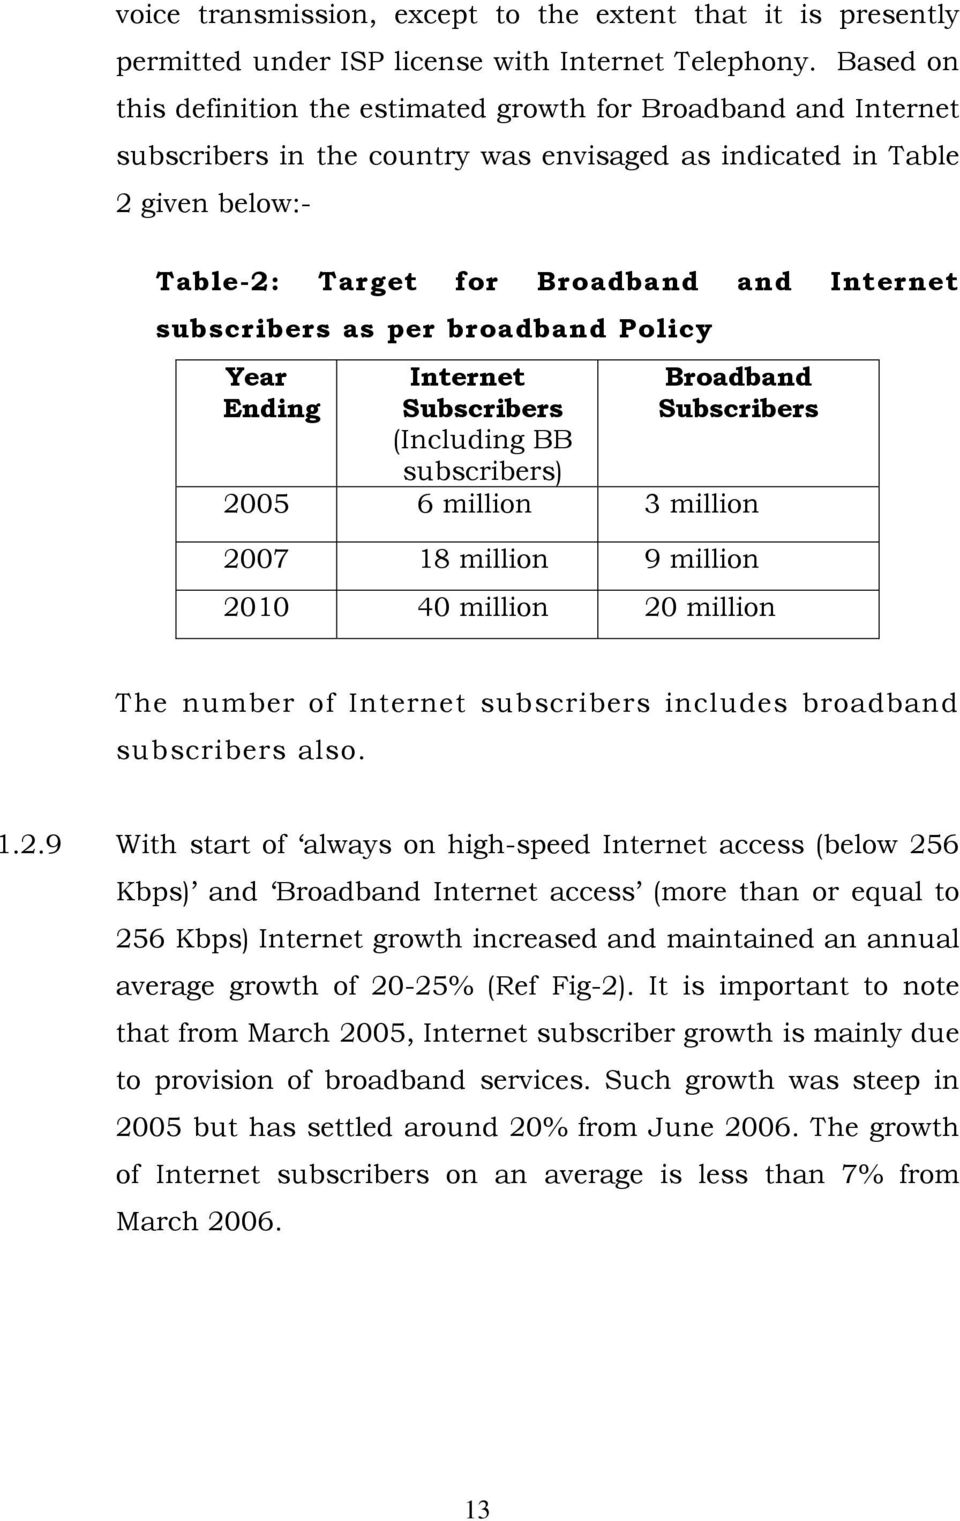 subscribers as per broadband Policy Year Ending Internet Subscribers (Including BB subscribers) Broadband Subscribers 2005 6 million 3 million 2007 18 million 9 million 2010 40 million 20 million The